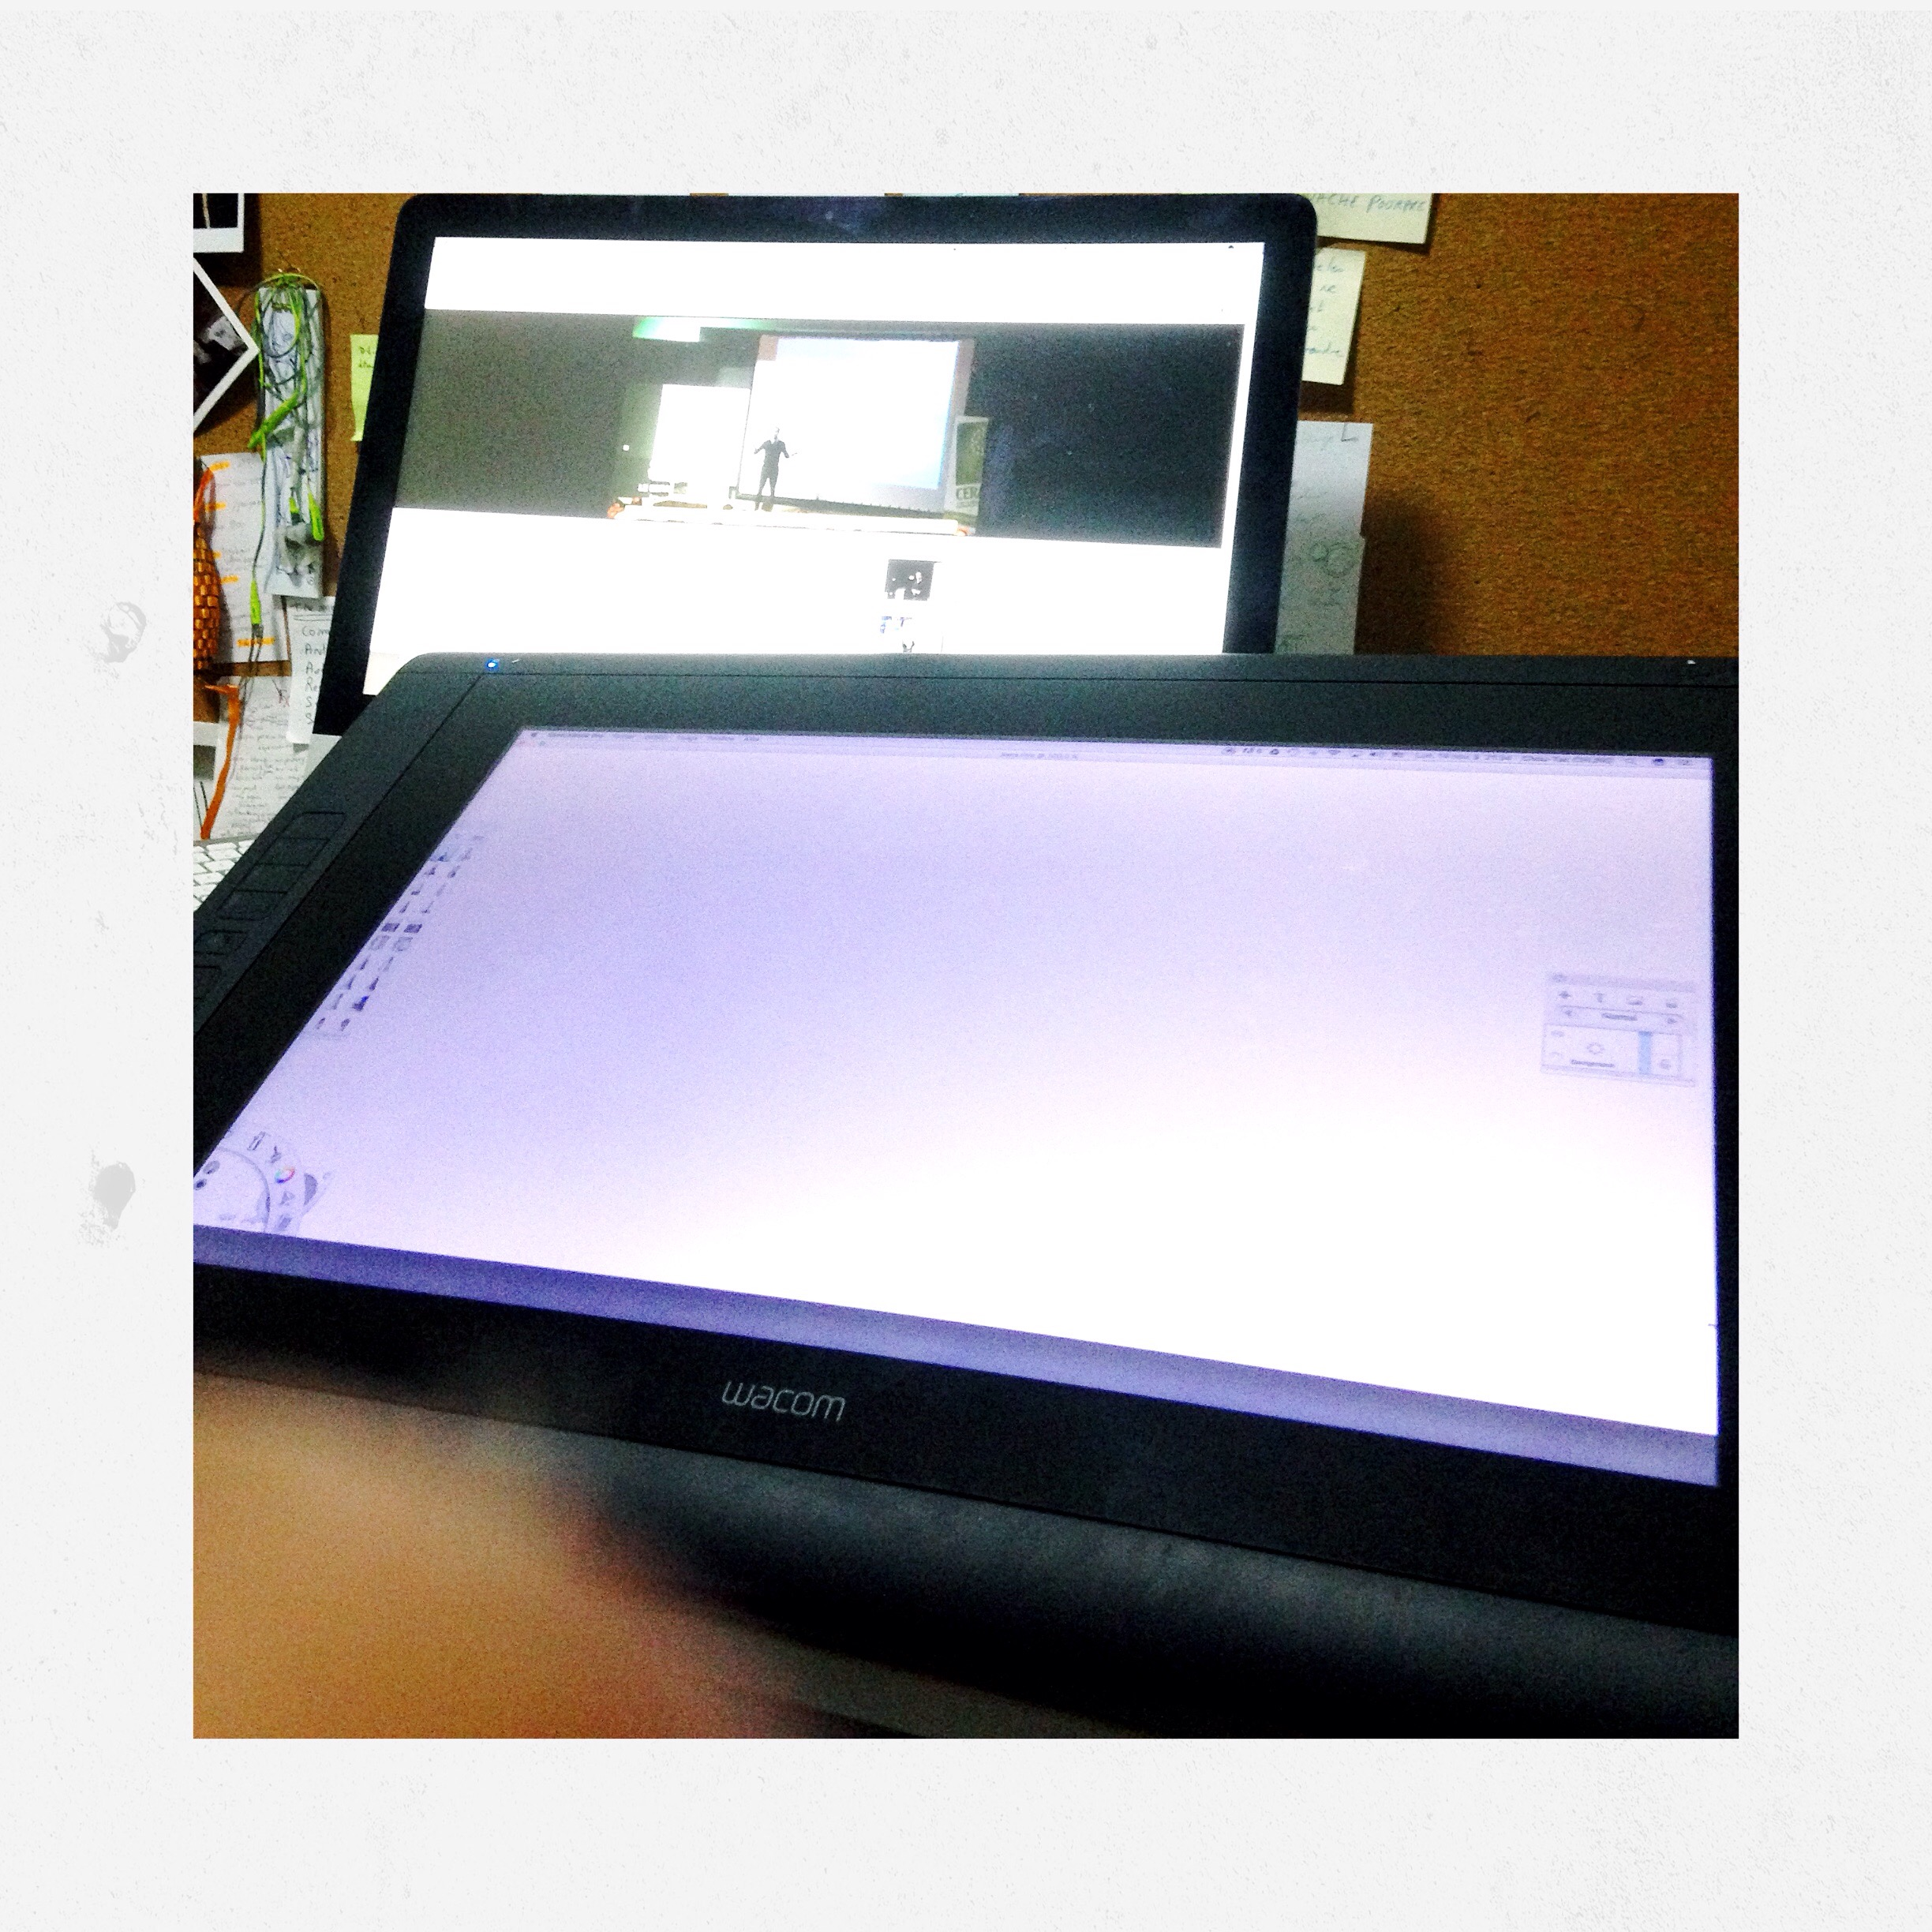 Ergotron How to install Wacom Cintiq 22HD Design Sketching the designsketchbook a.JPG